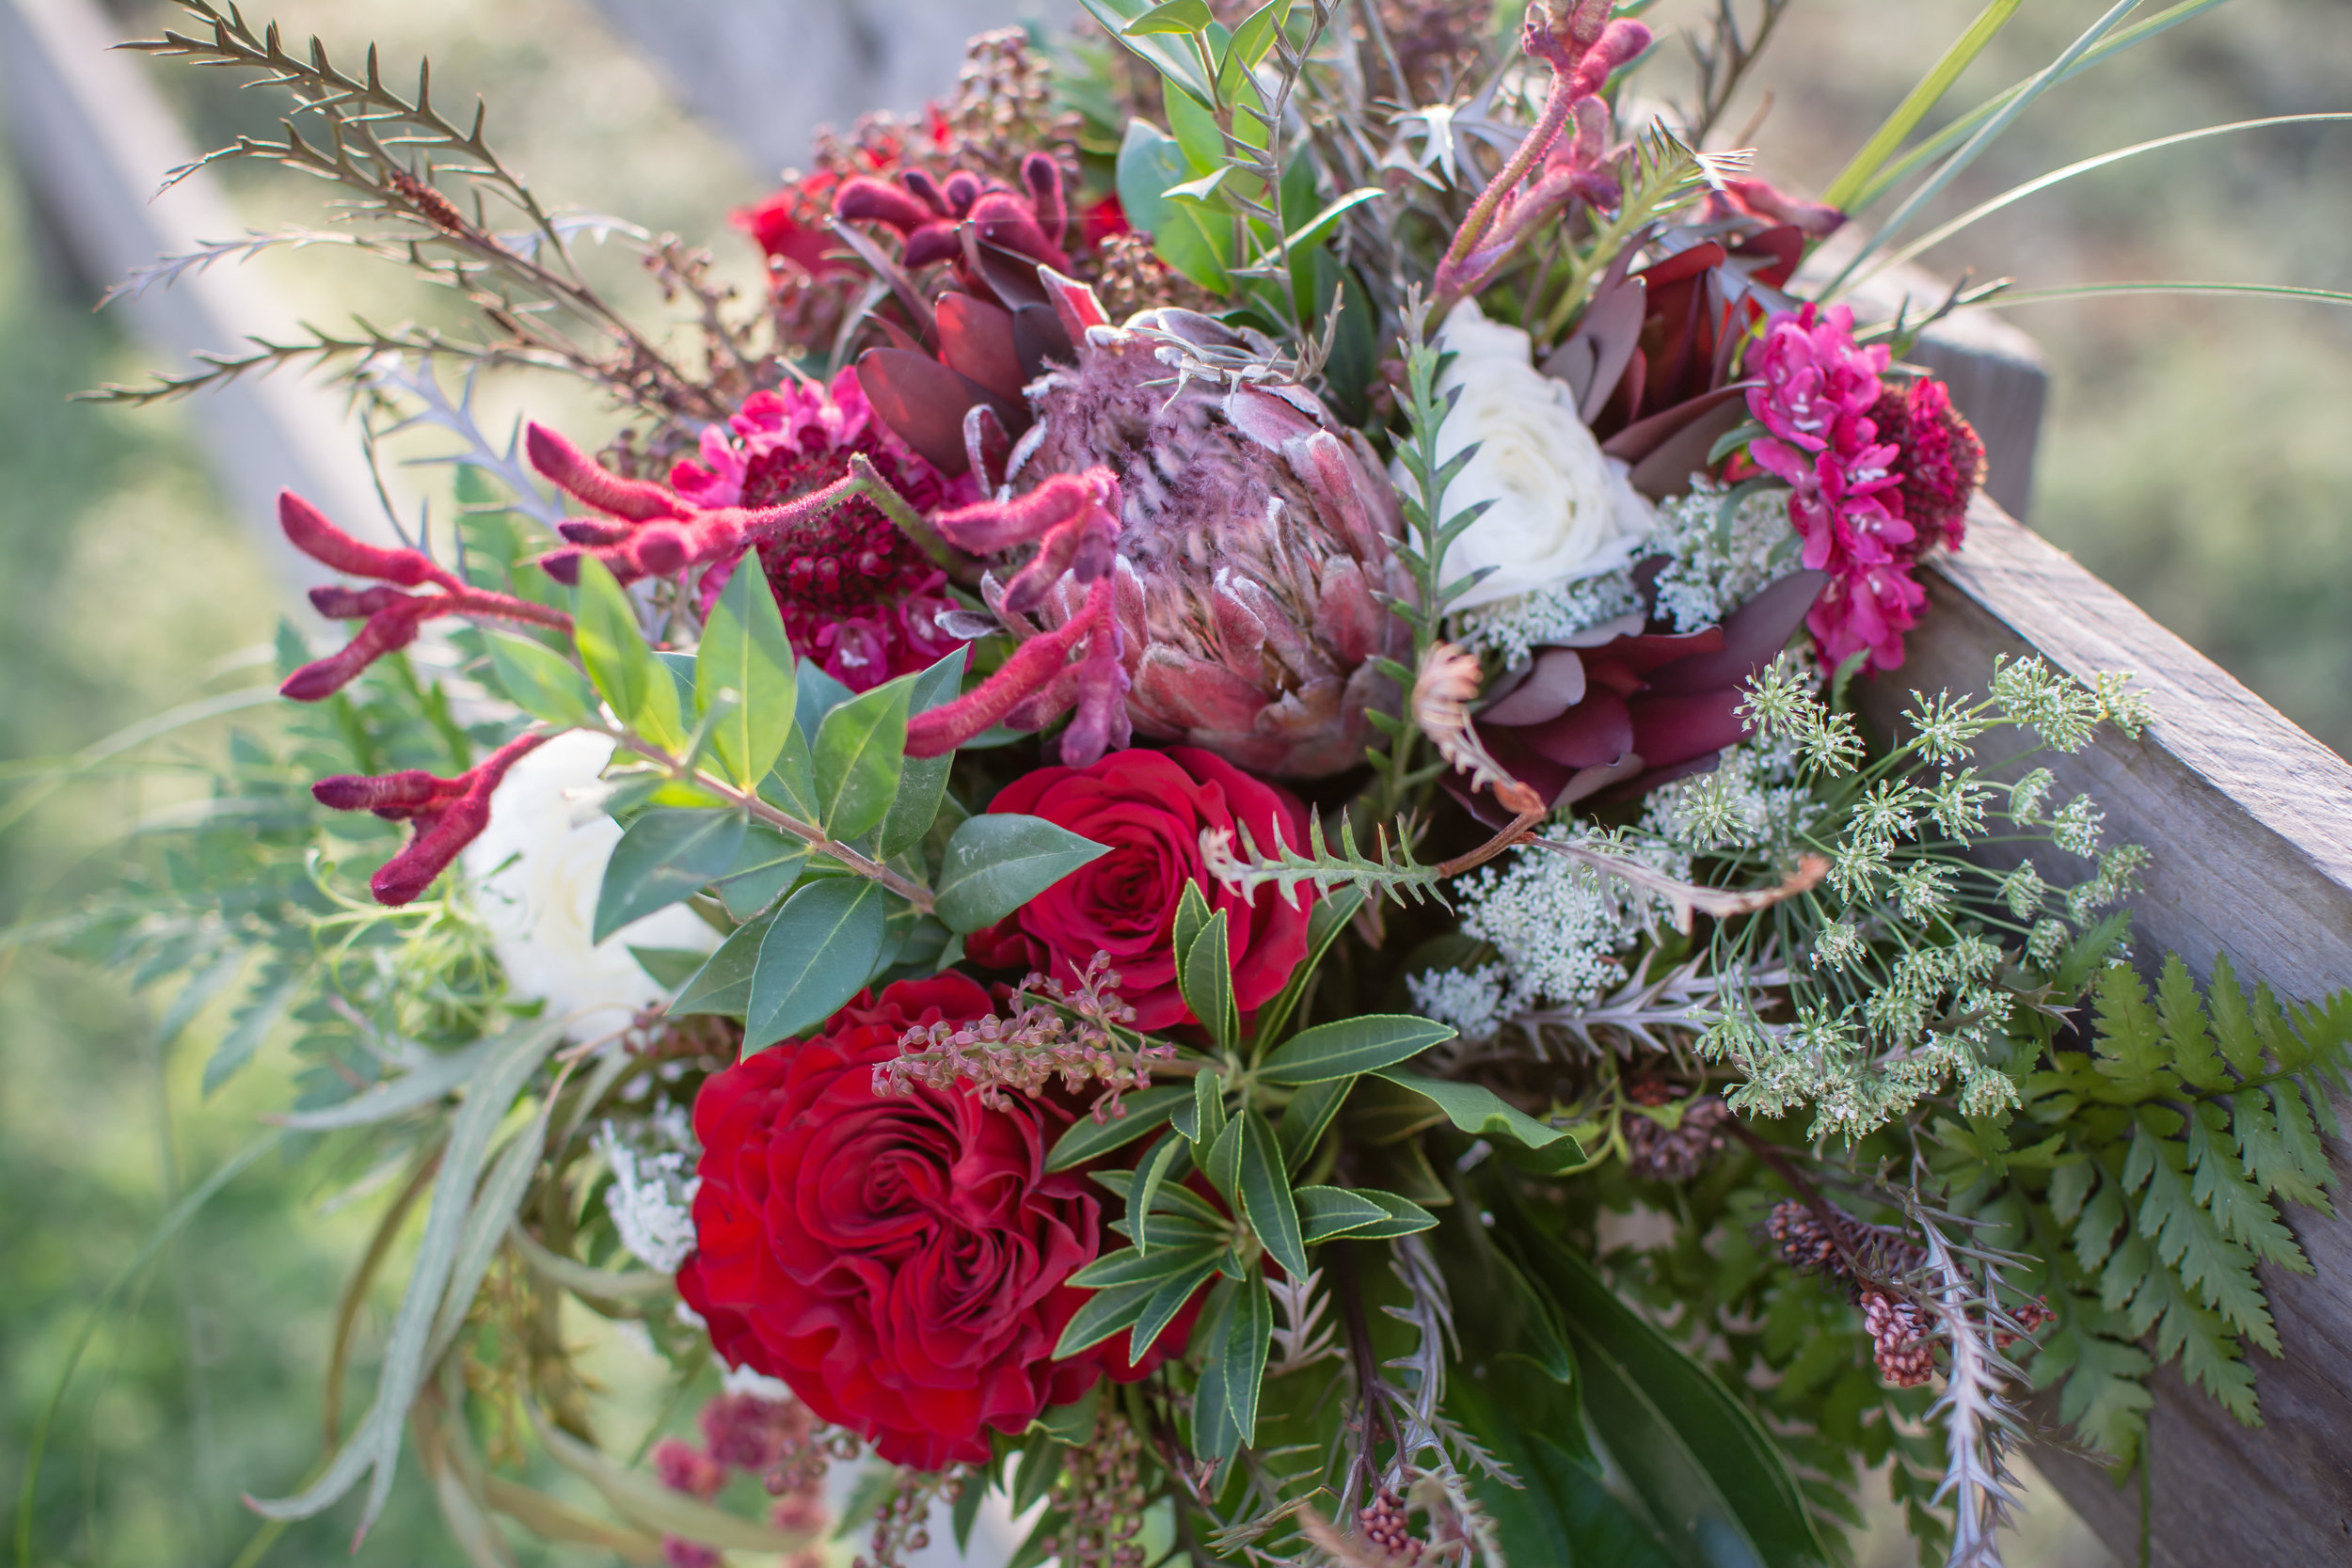 Beautifully designed bouquet by The Flower Studio in Altamonte Springs, FL